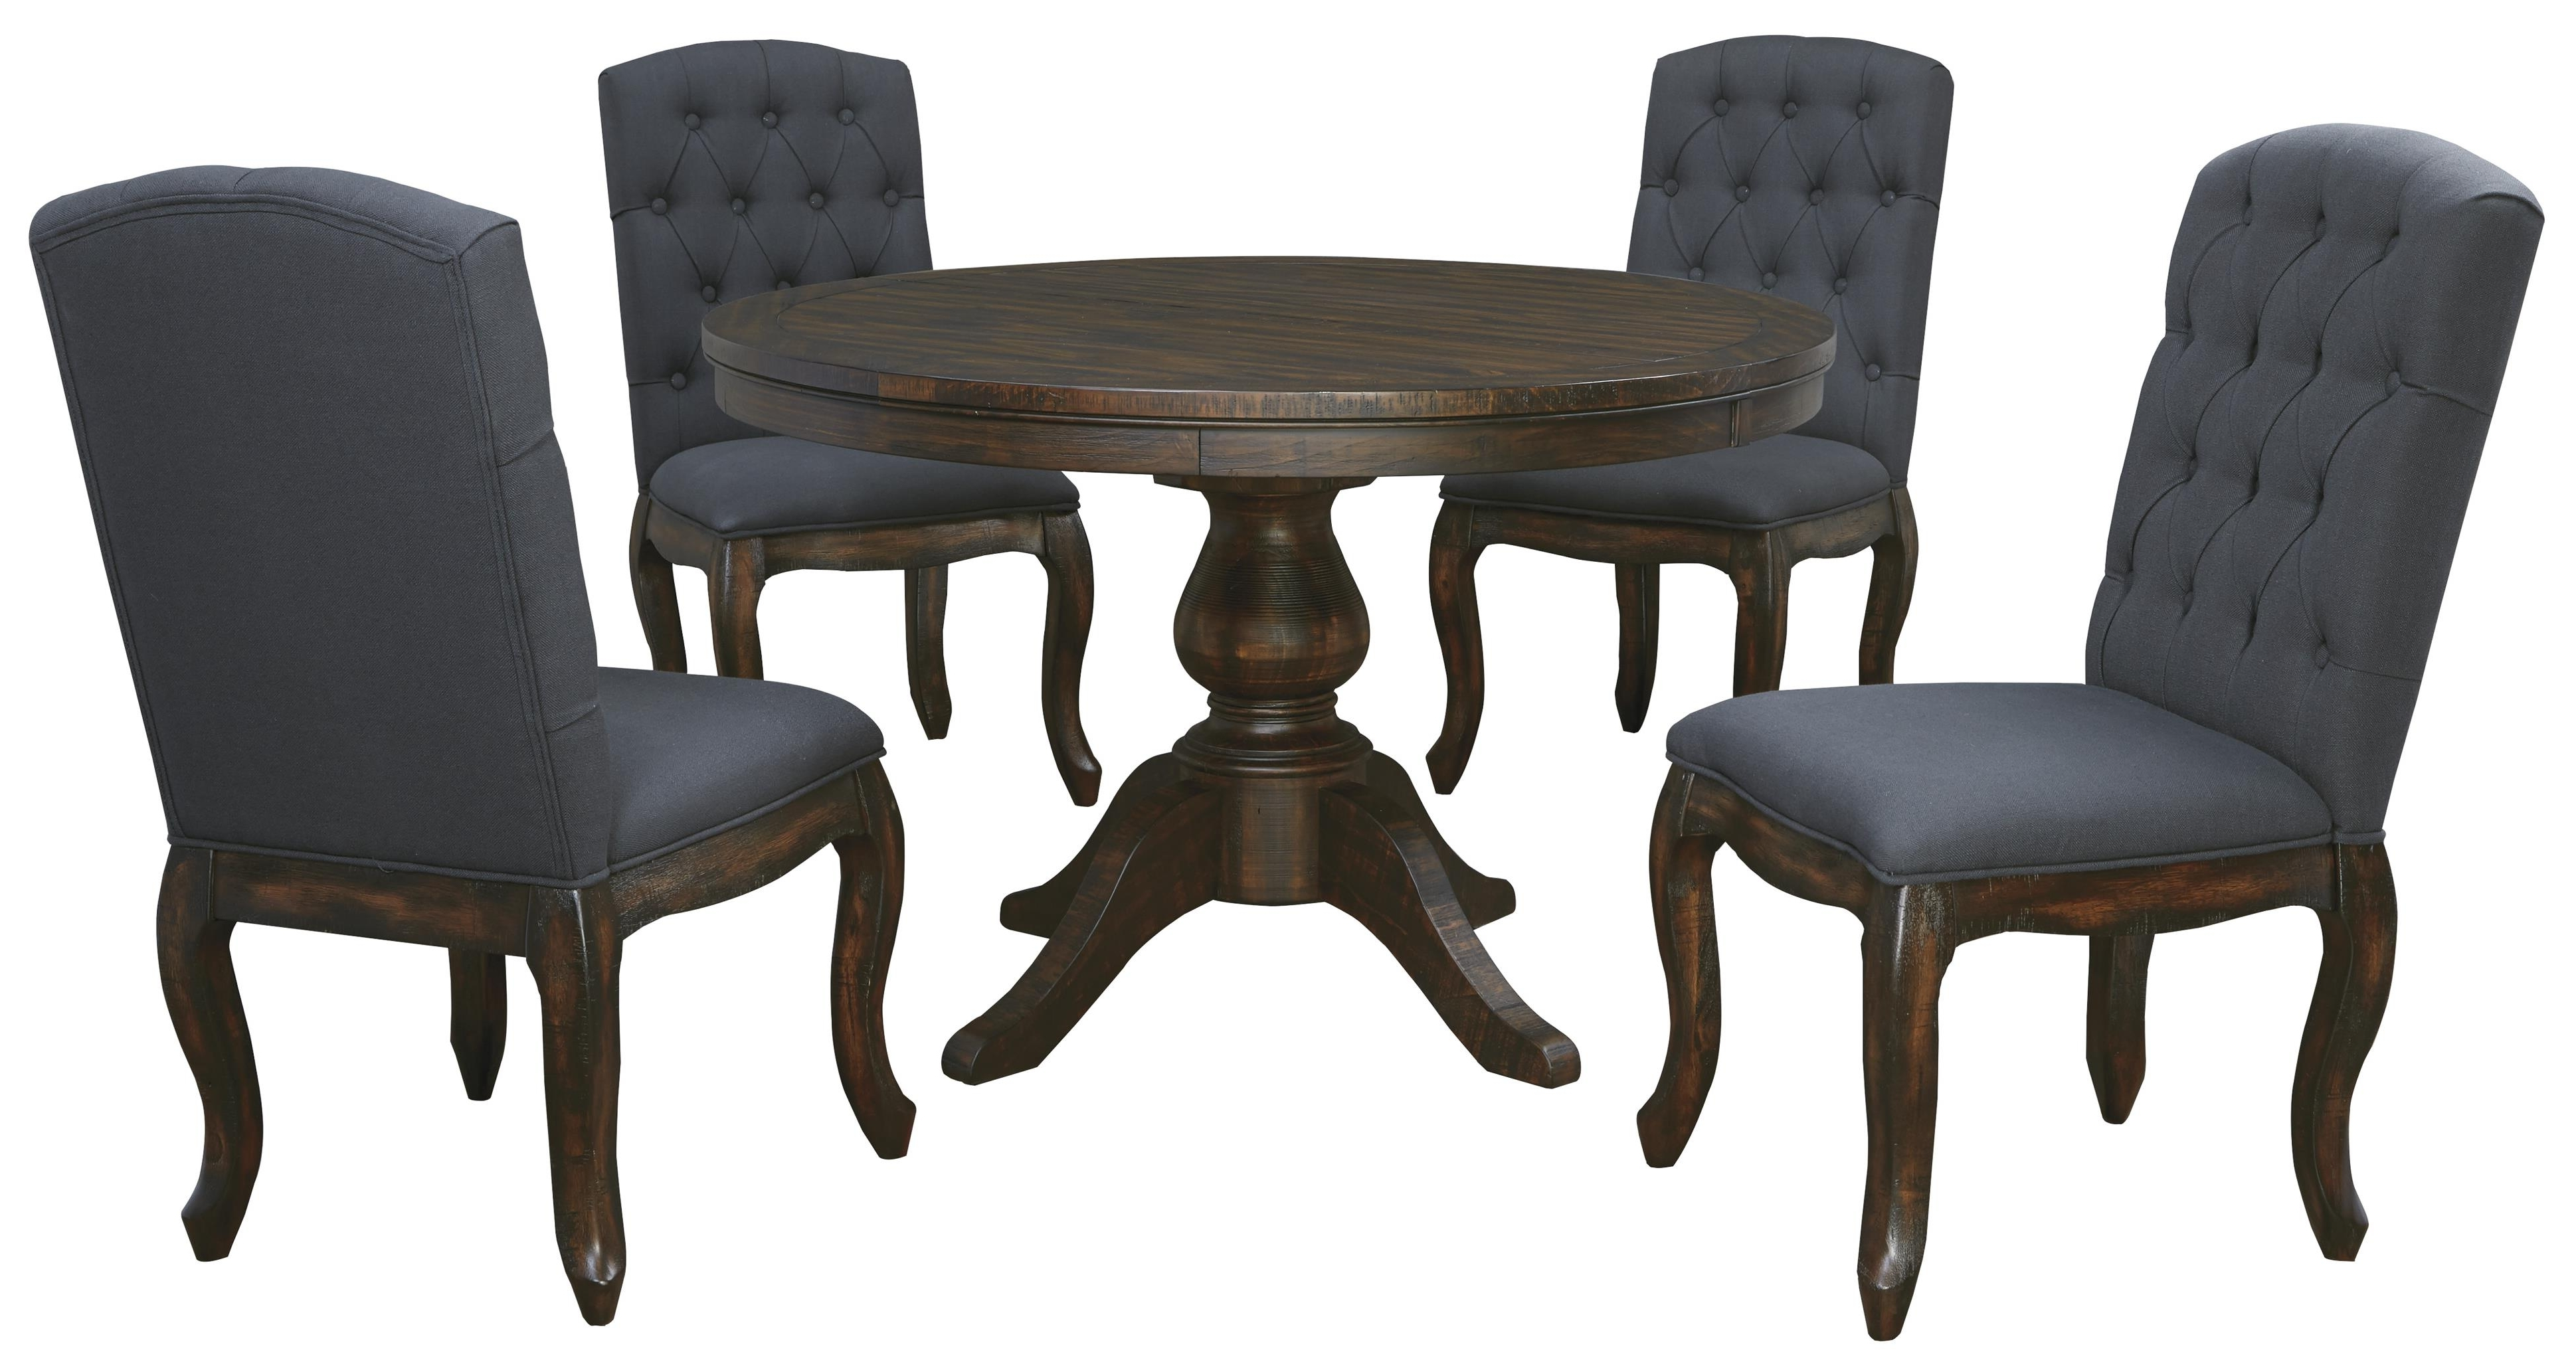 Newest 5 Piece Round Dining Table Set – Castrophotos With Macie Round Dining Tables (View 15 of 25)